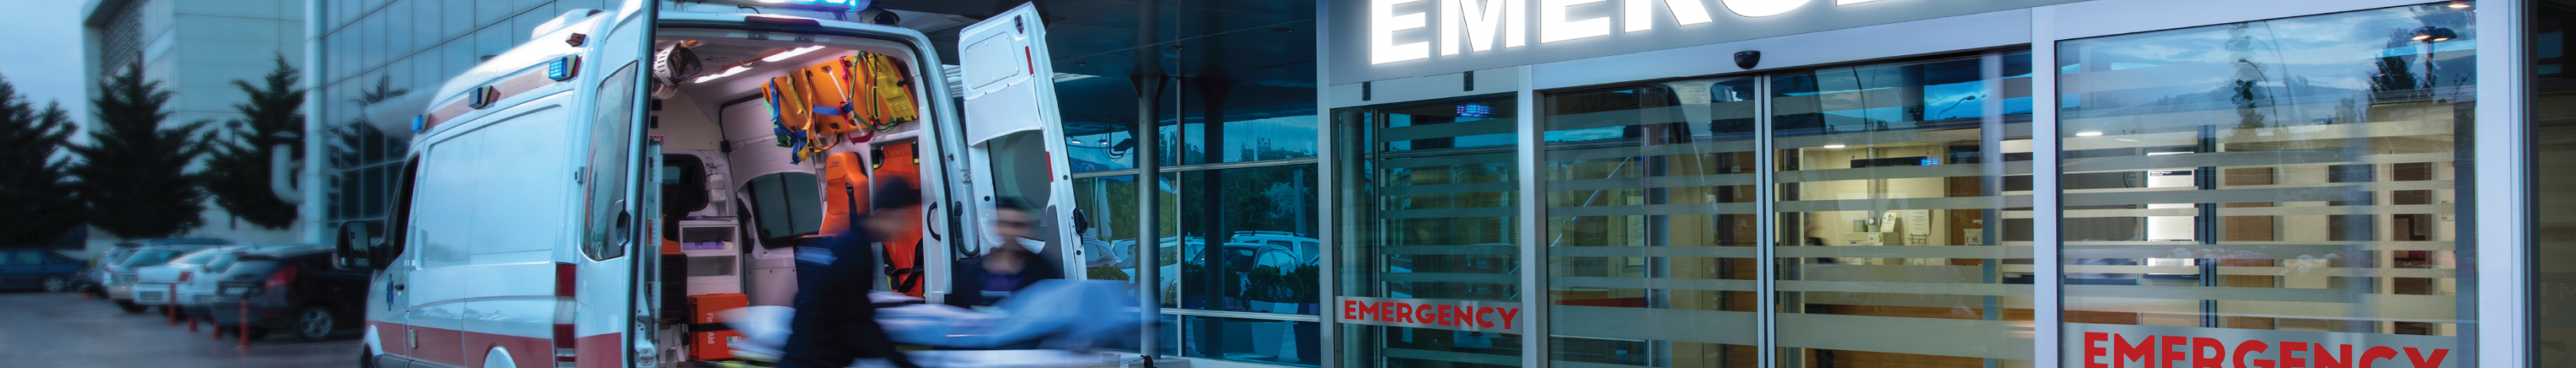 Ambulance in front of an emergency room entrance